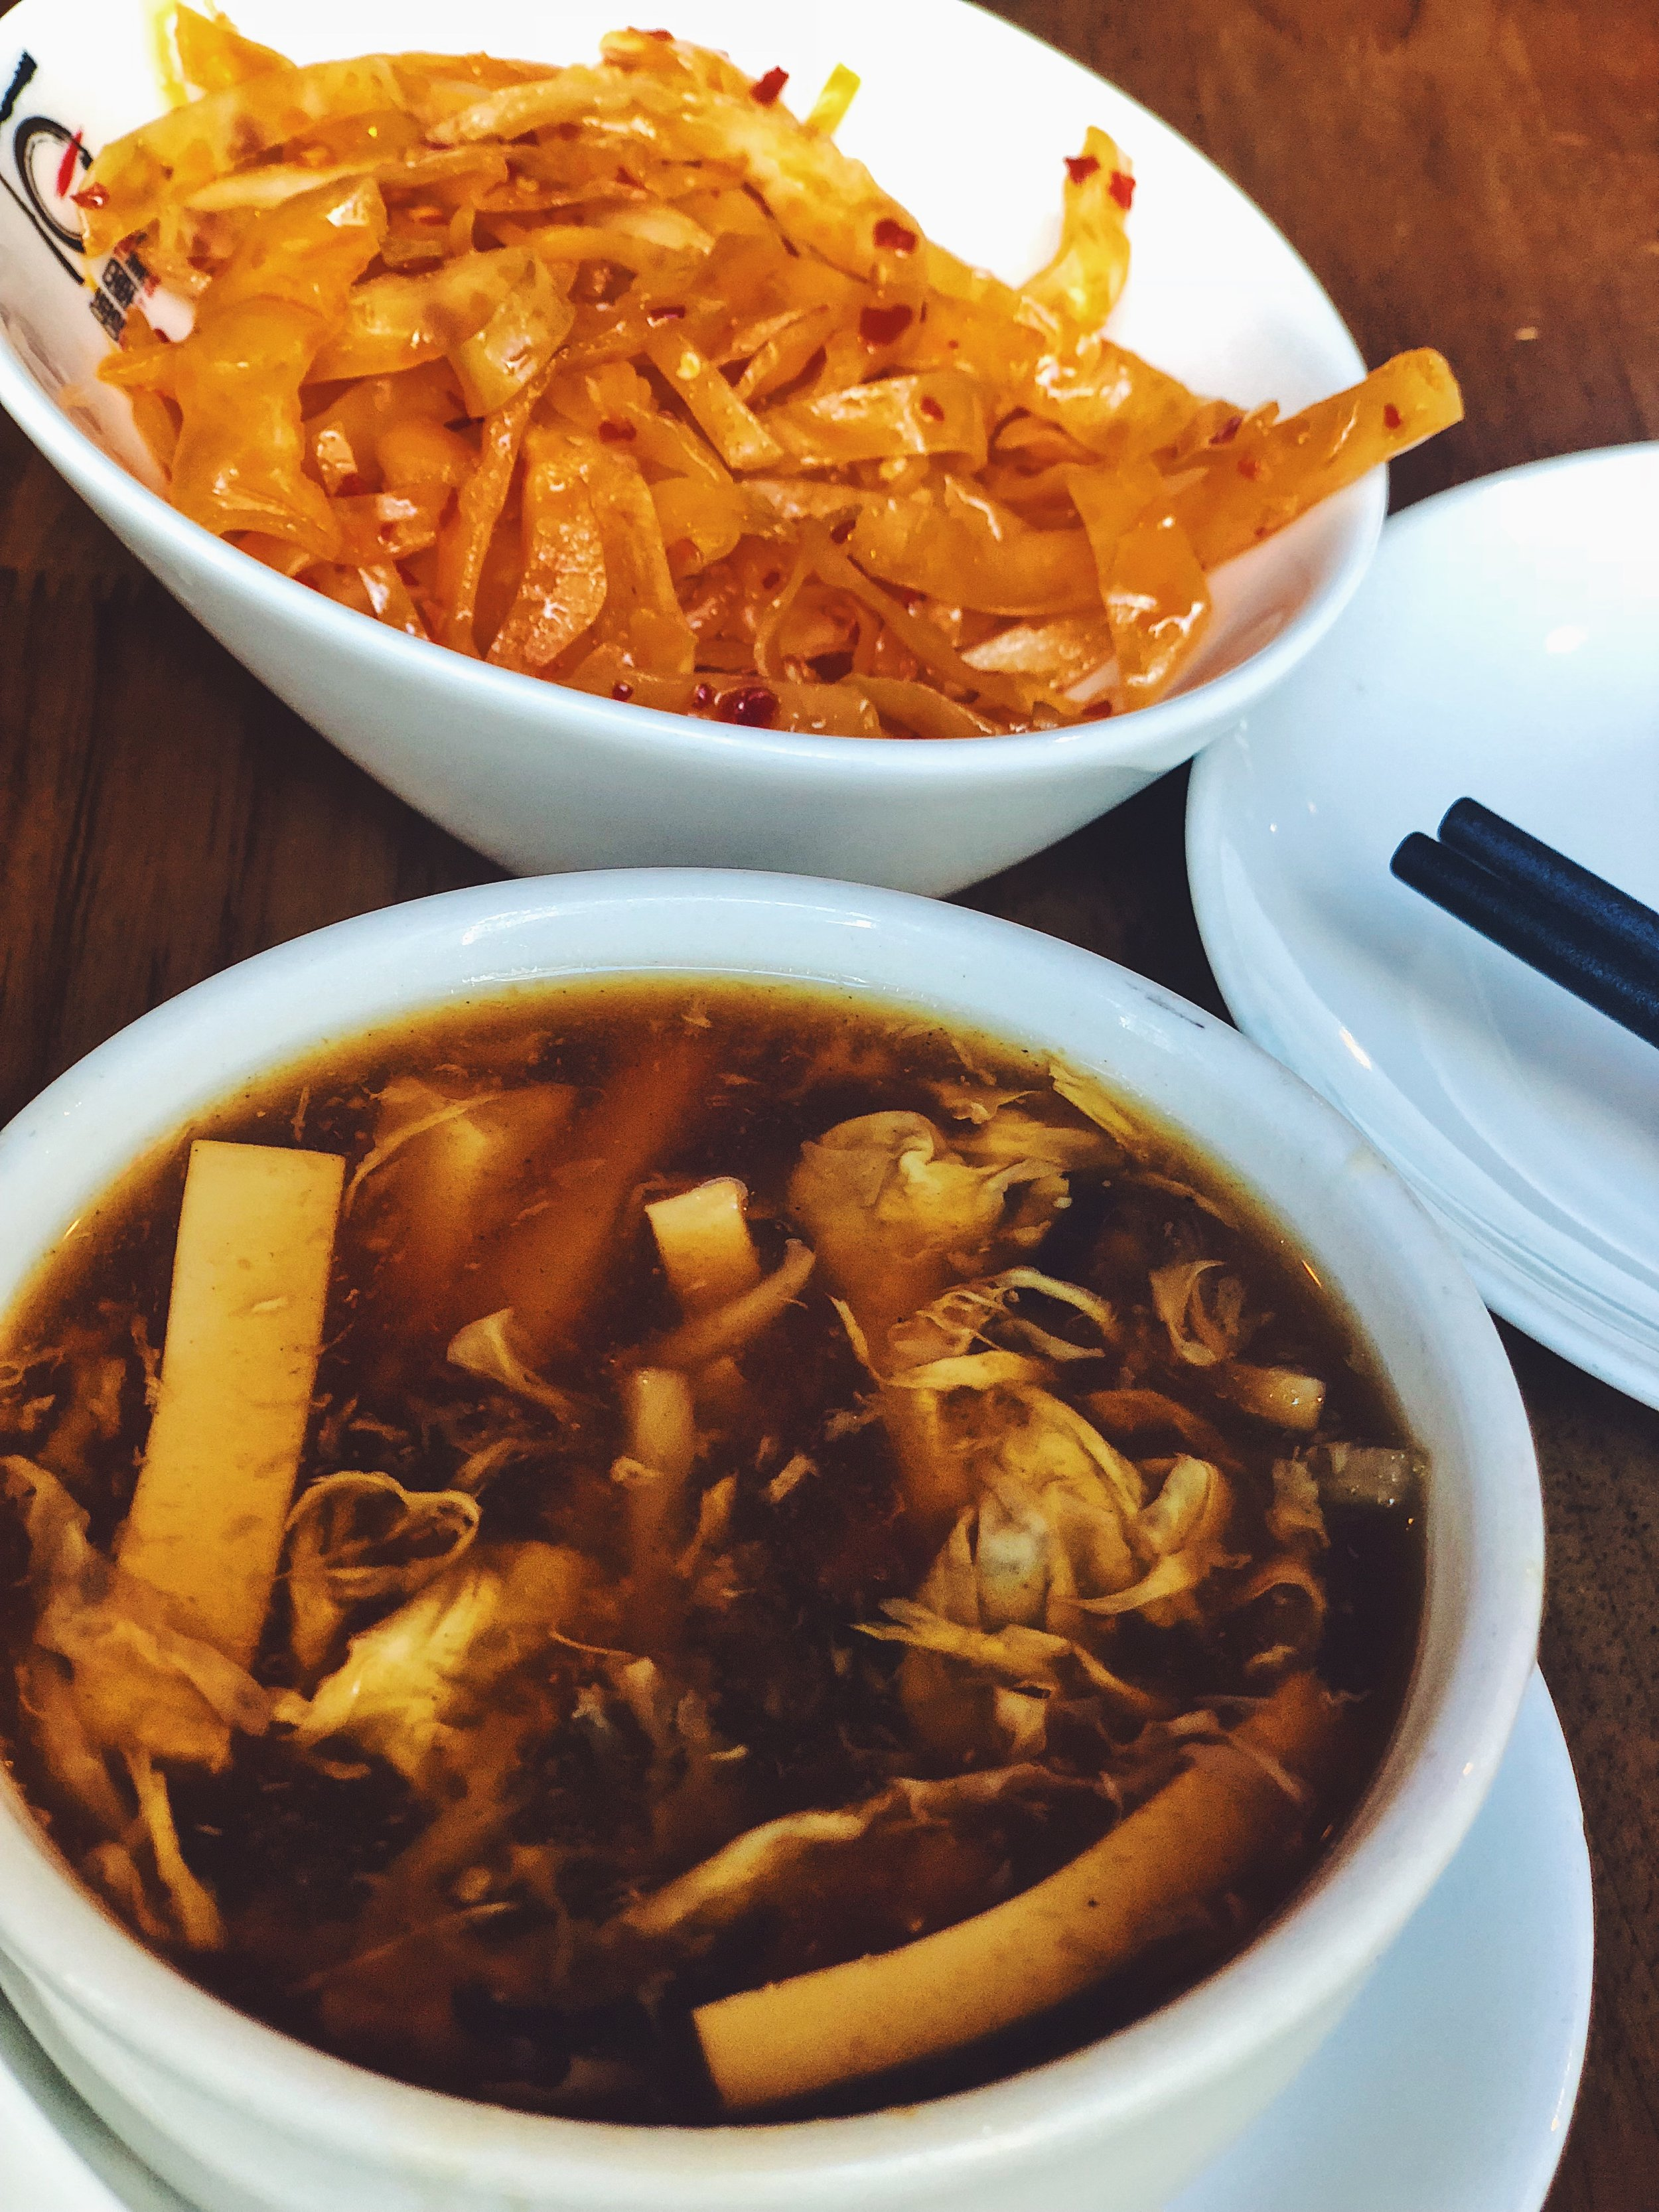 Spicy Cabbage & Traditional Hot and Sour Soup